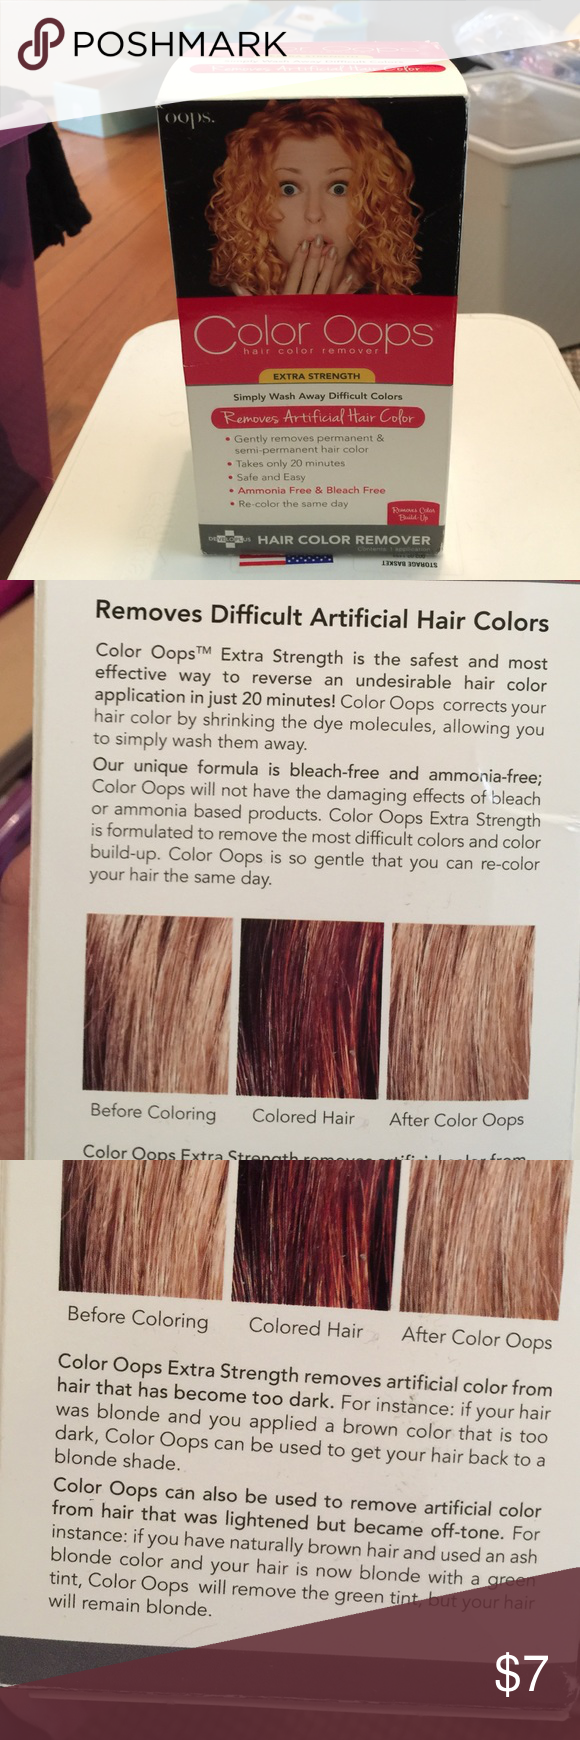 Color Oops Hair Color Remover Nwt My Posh Closet Pinterest